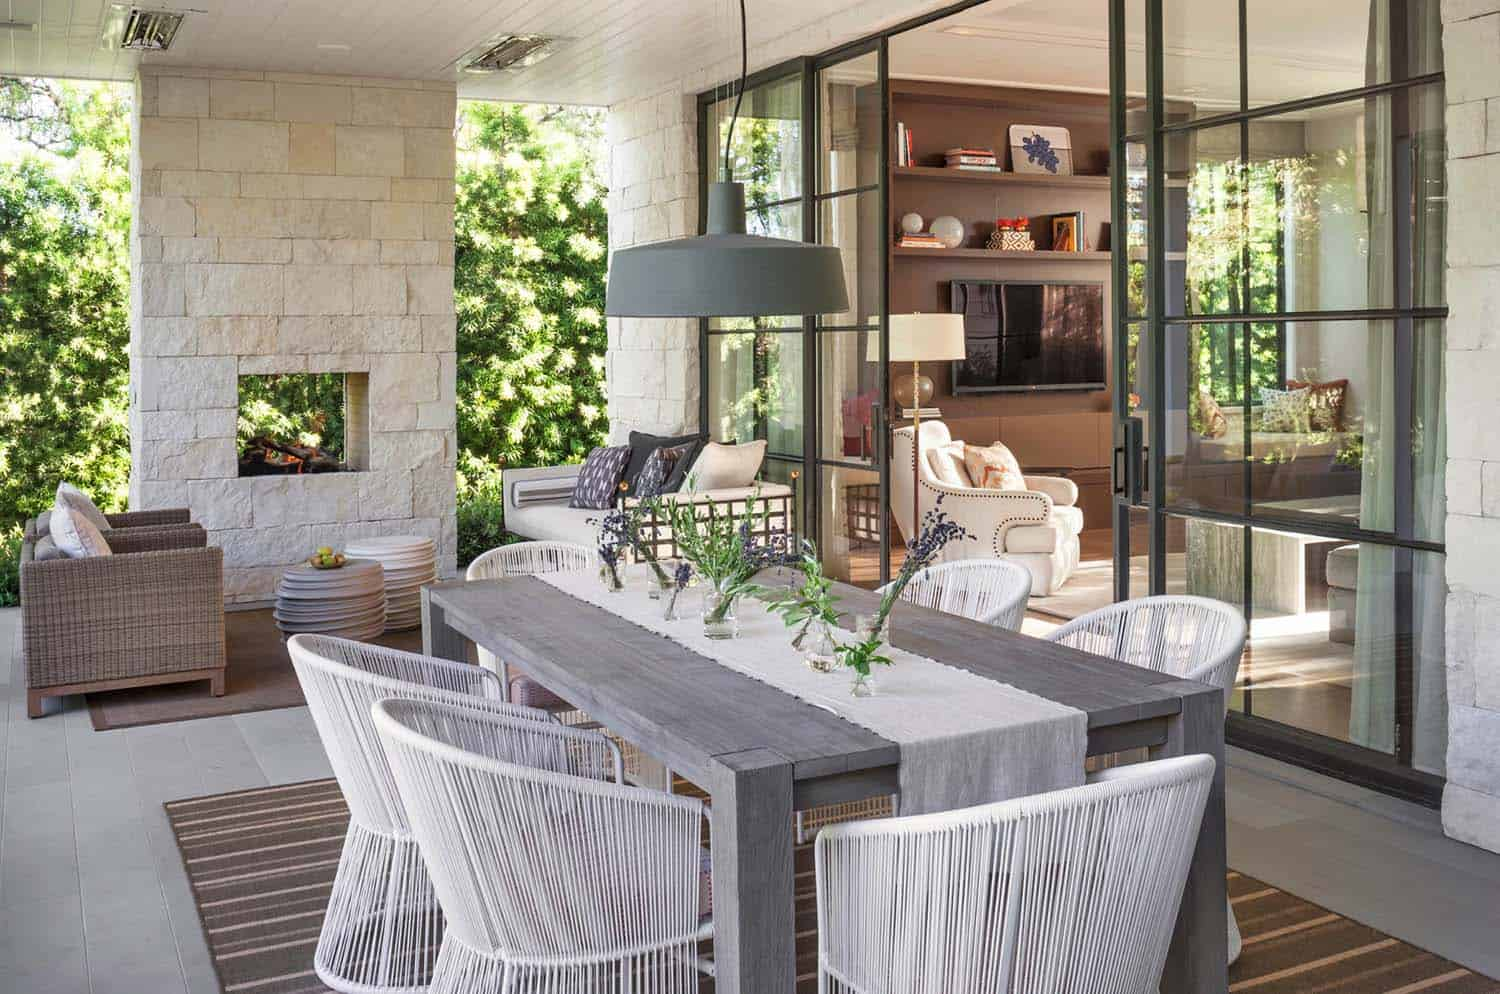 Pacific Palisades Home-Annette English-18-1 Kindesign